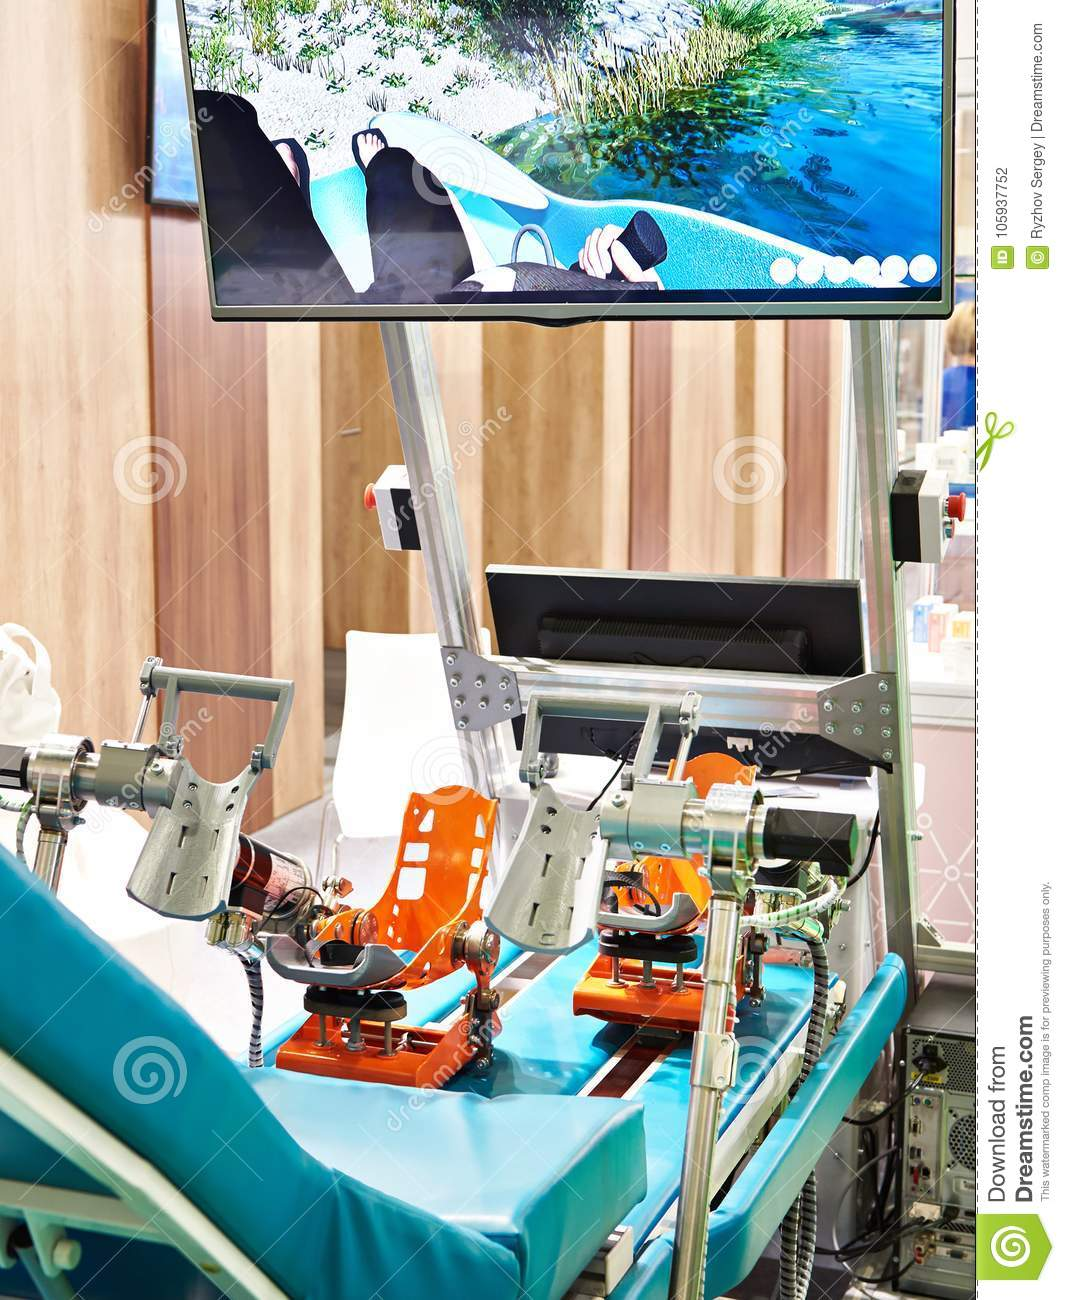 Foot simulator for rehabilitation of disabled people